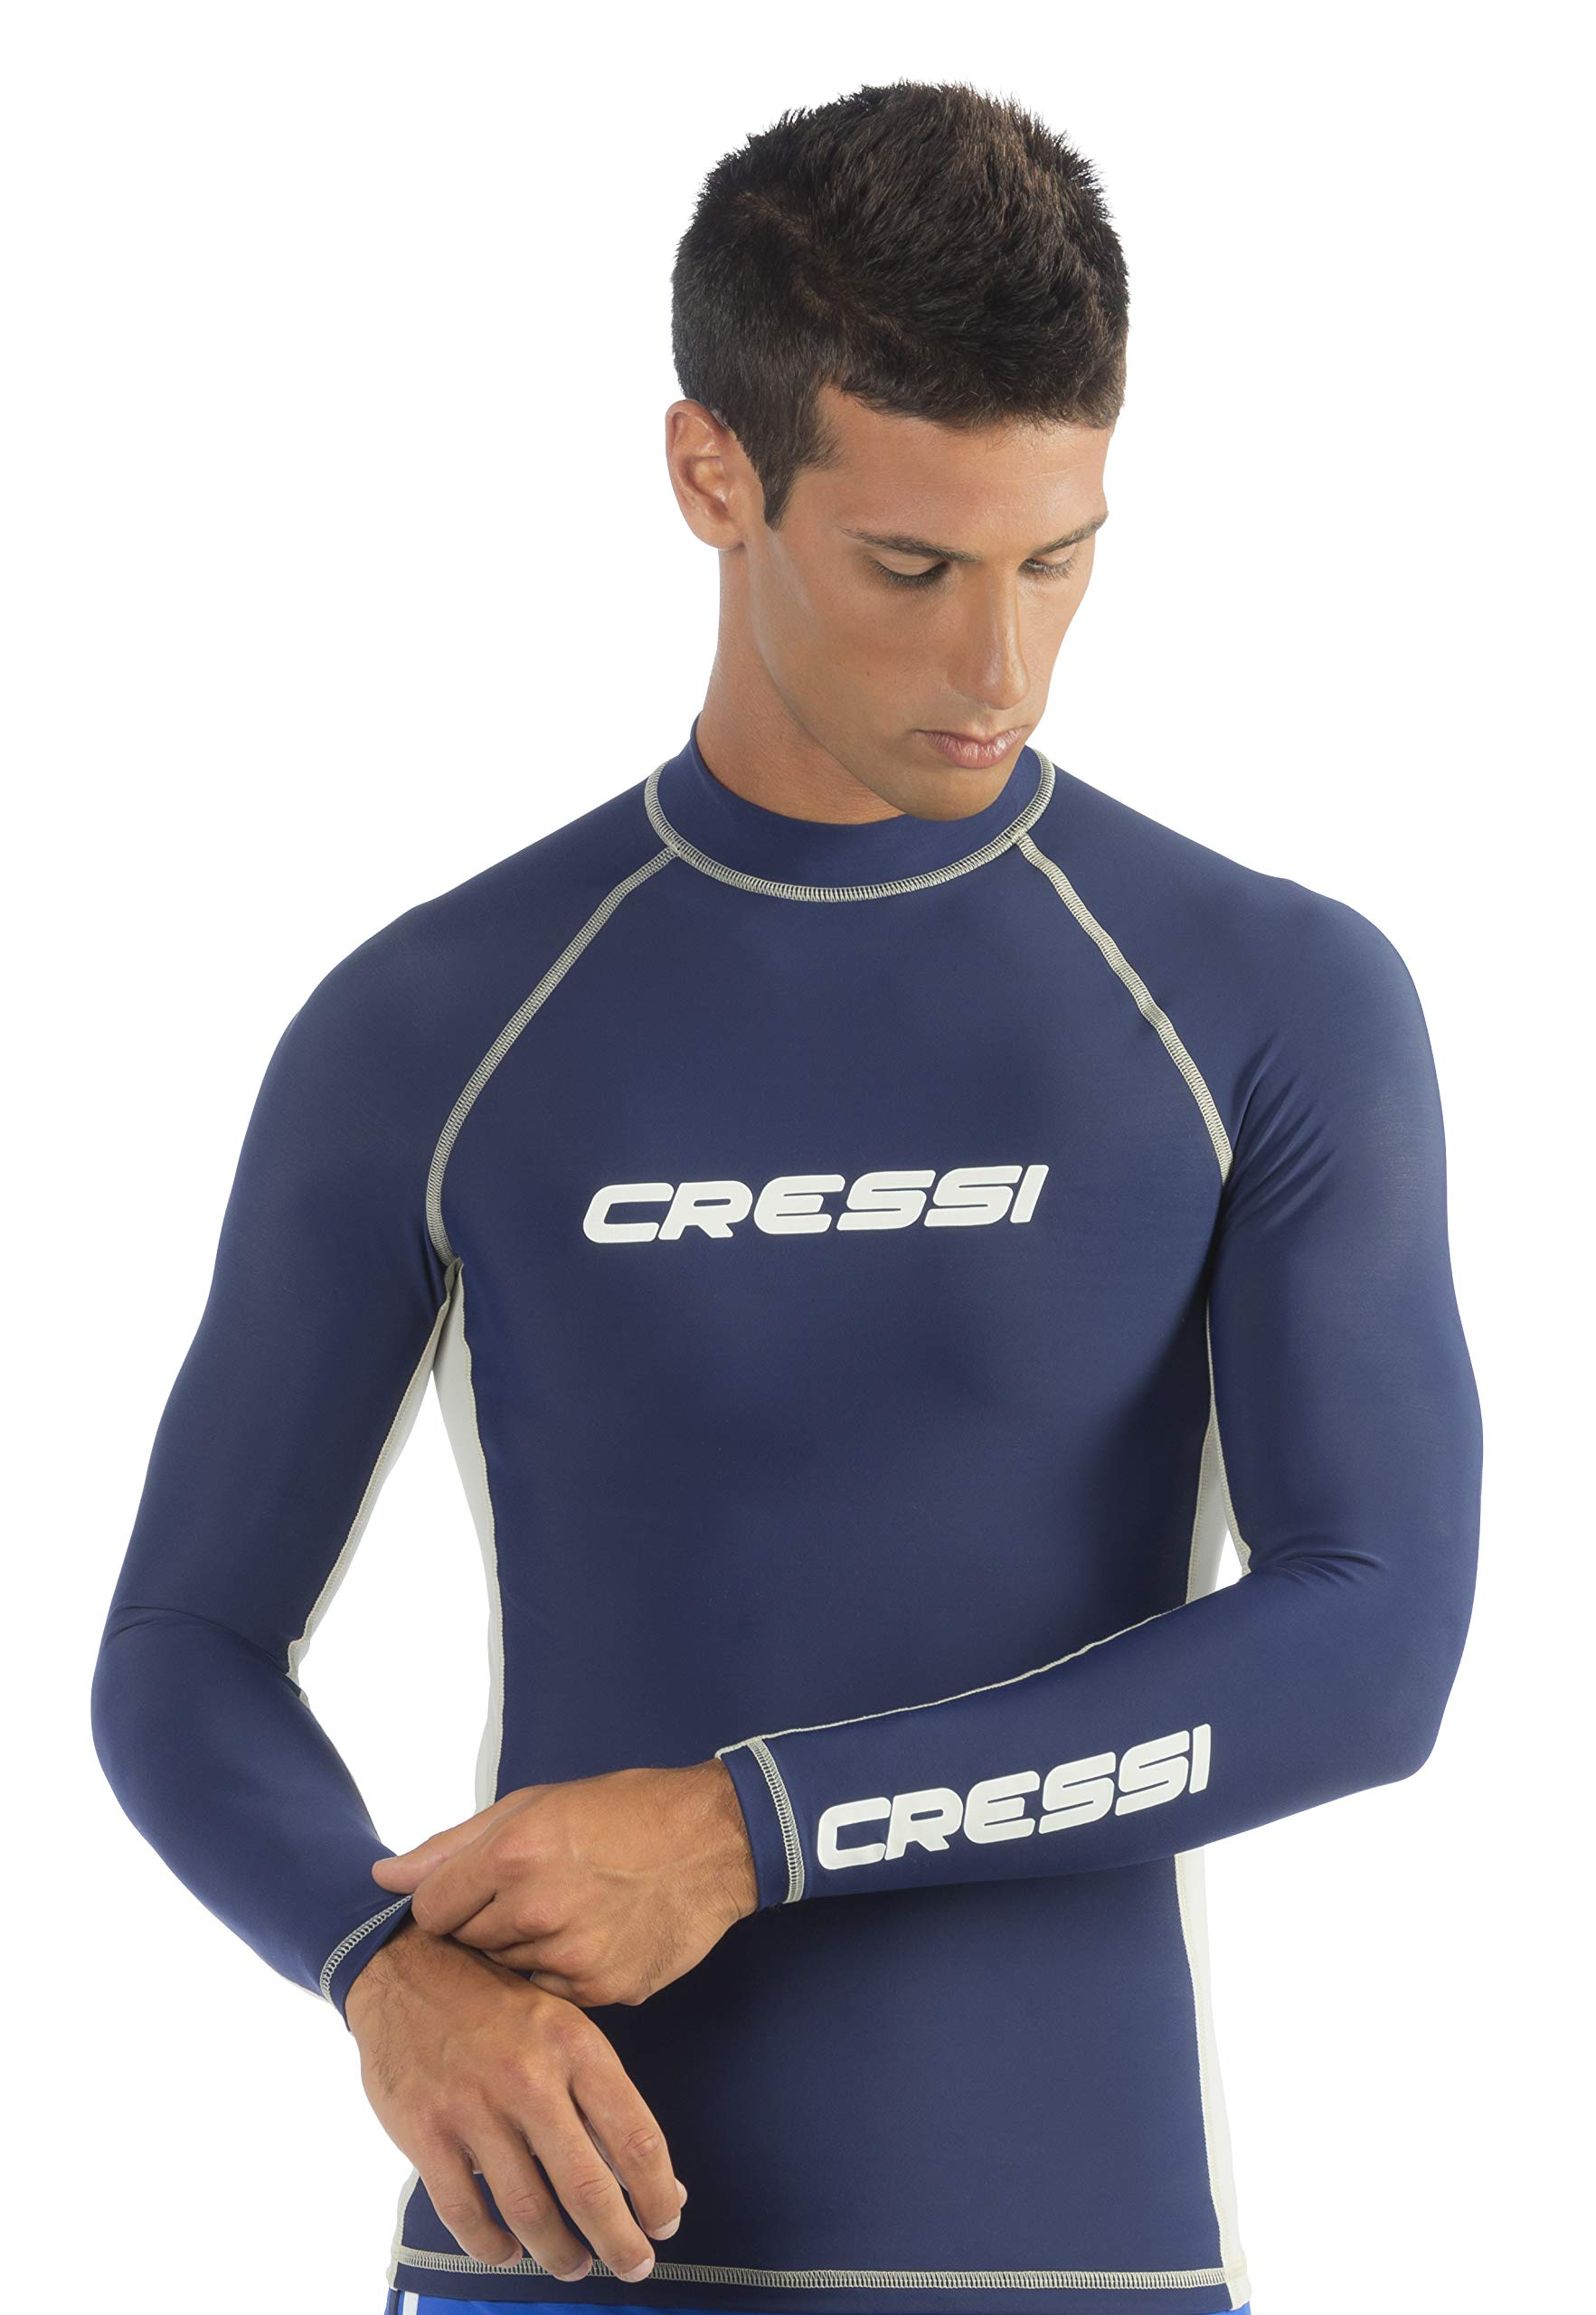 Cressi Men's Performance Dry-Fit Rash Guard for Swimming, Surfing, Diving and Water Activities - Keeps Body Warm - UV Sun Protection | Designed in Italy